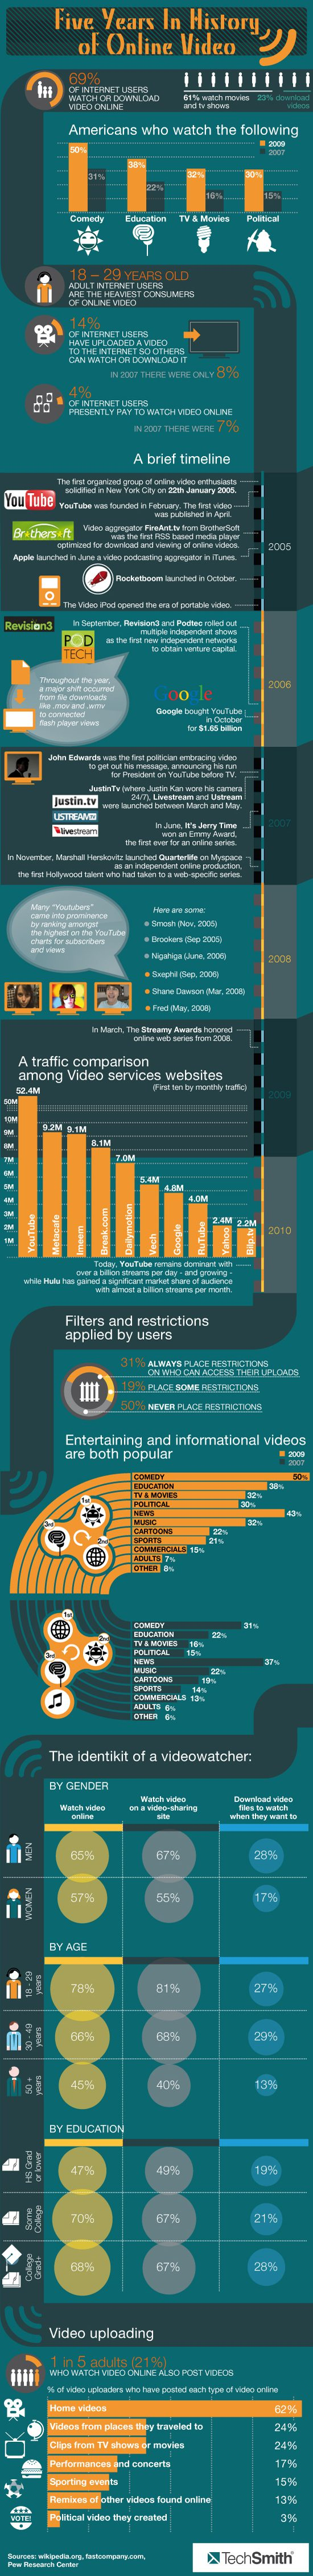 History of Online Video Infographic